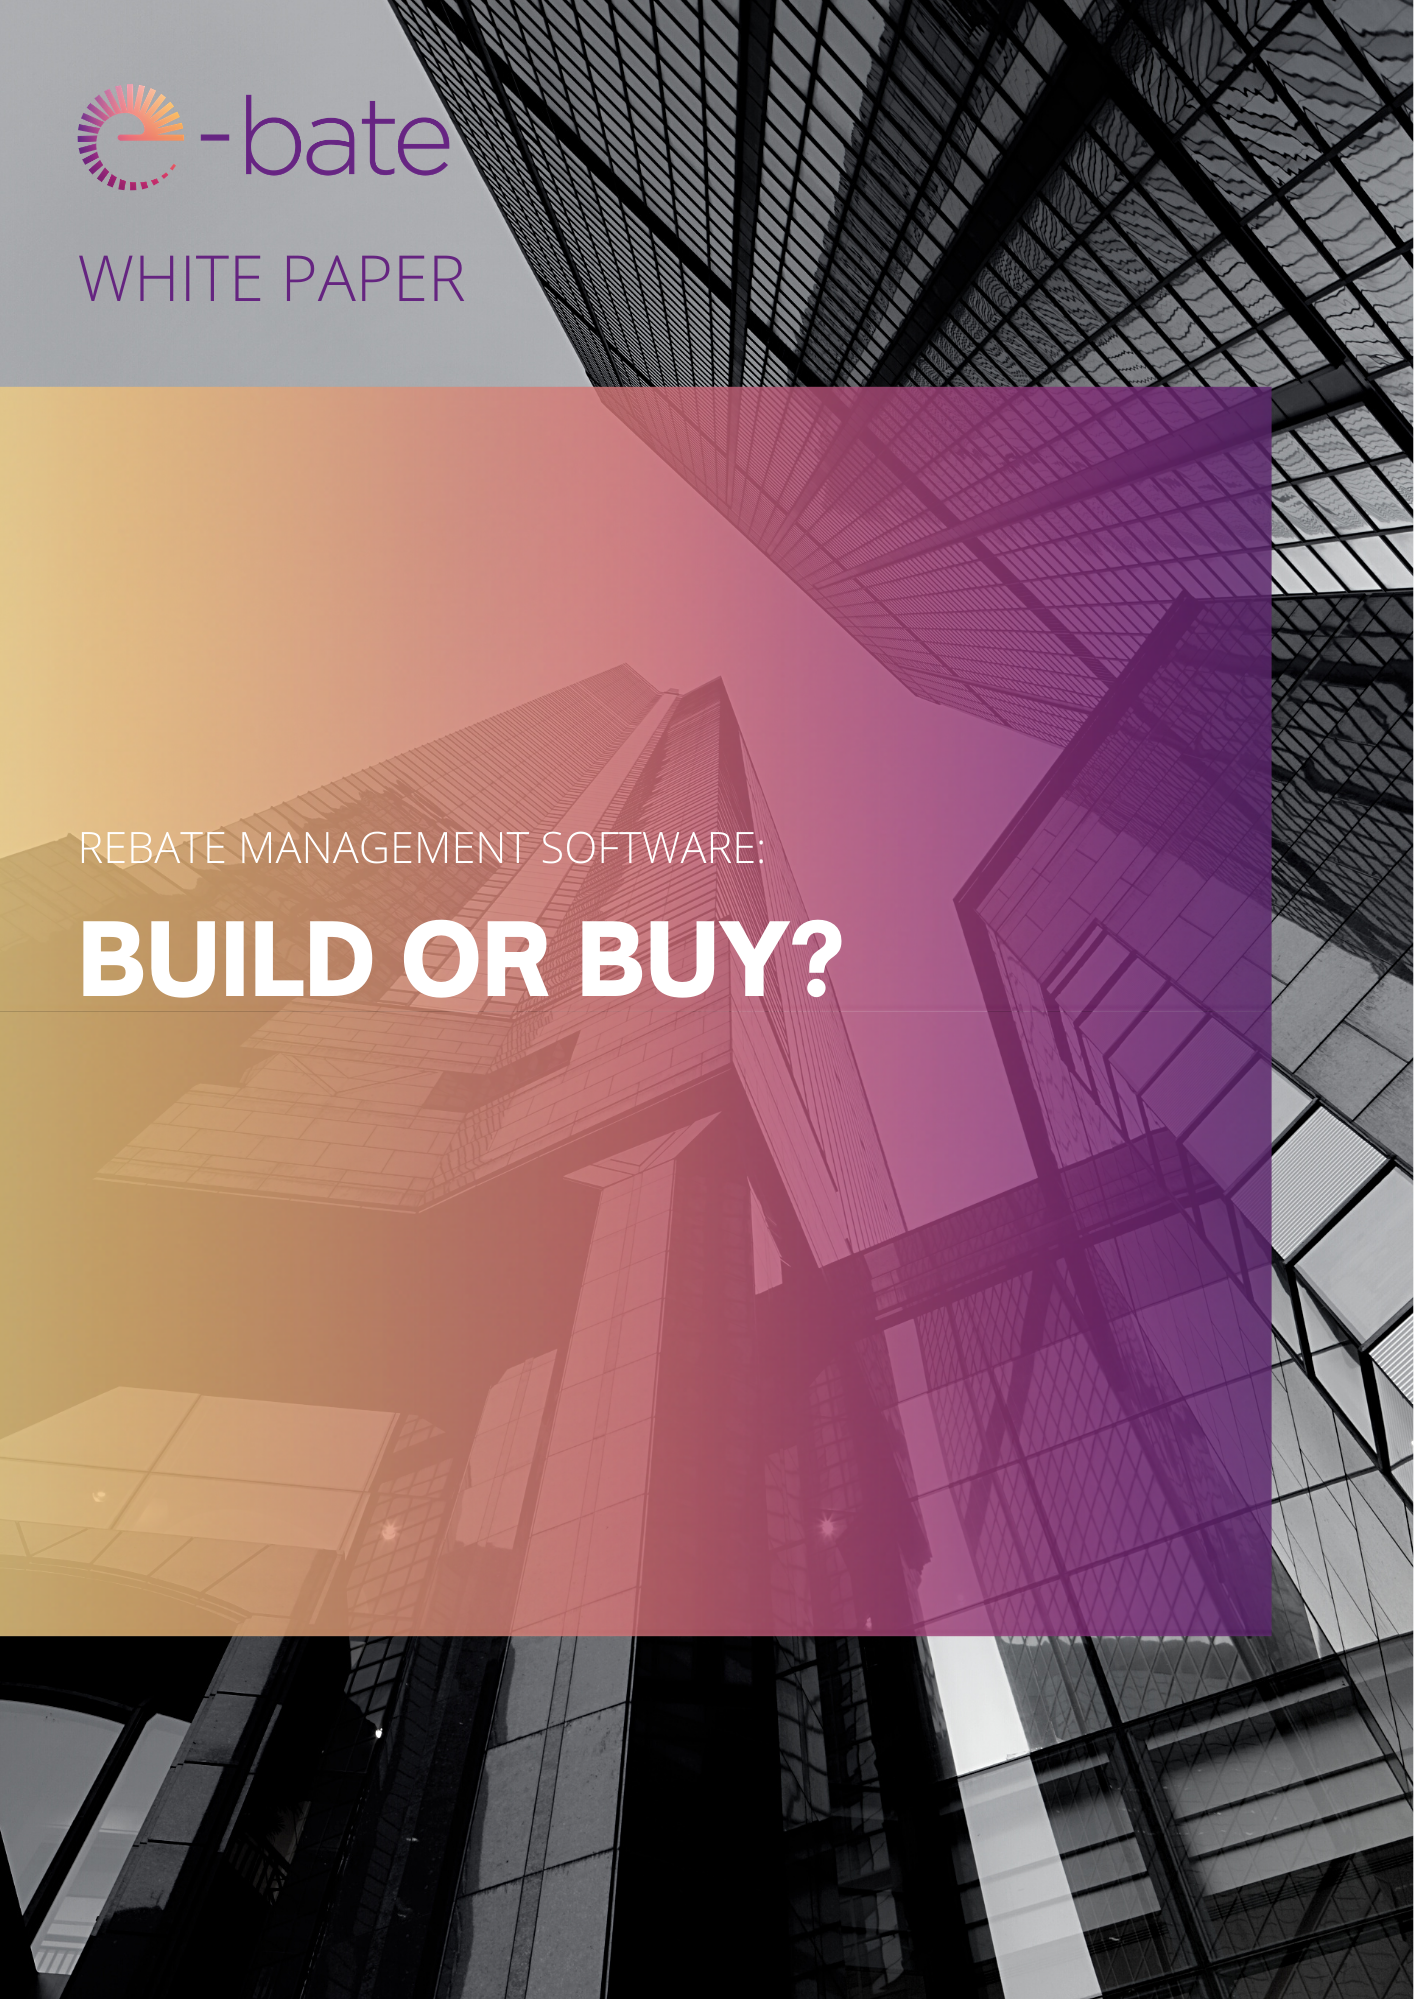 BUILD OR BUY white paper